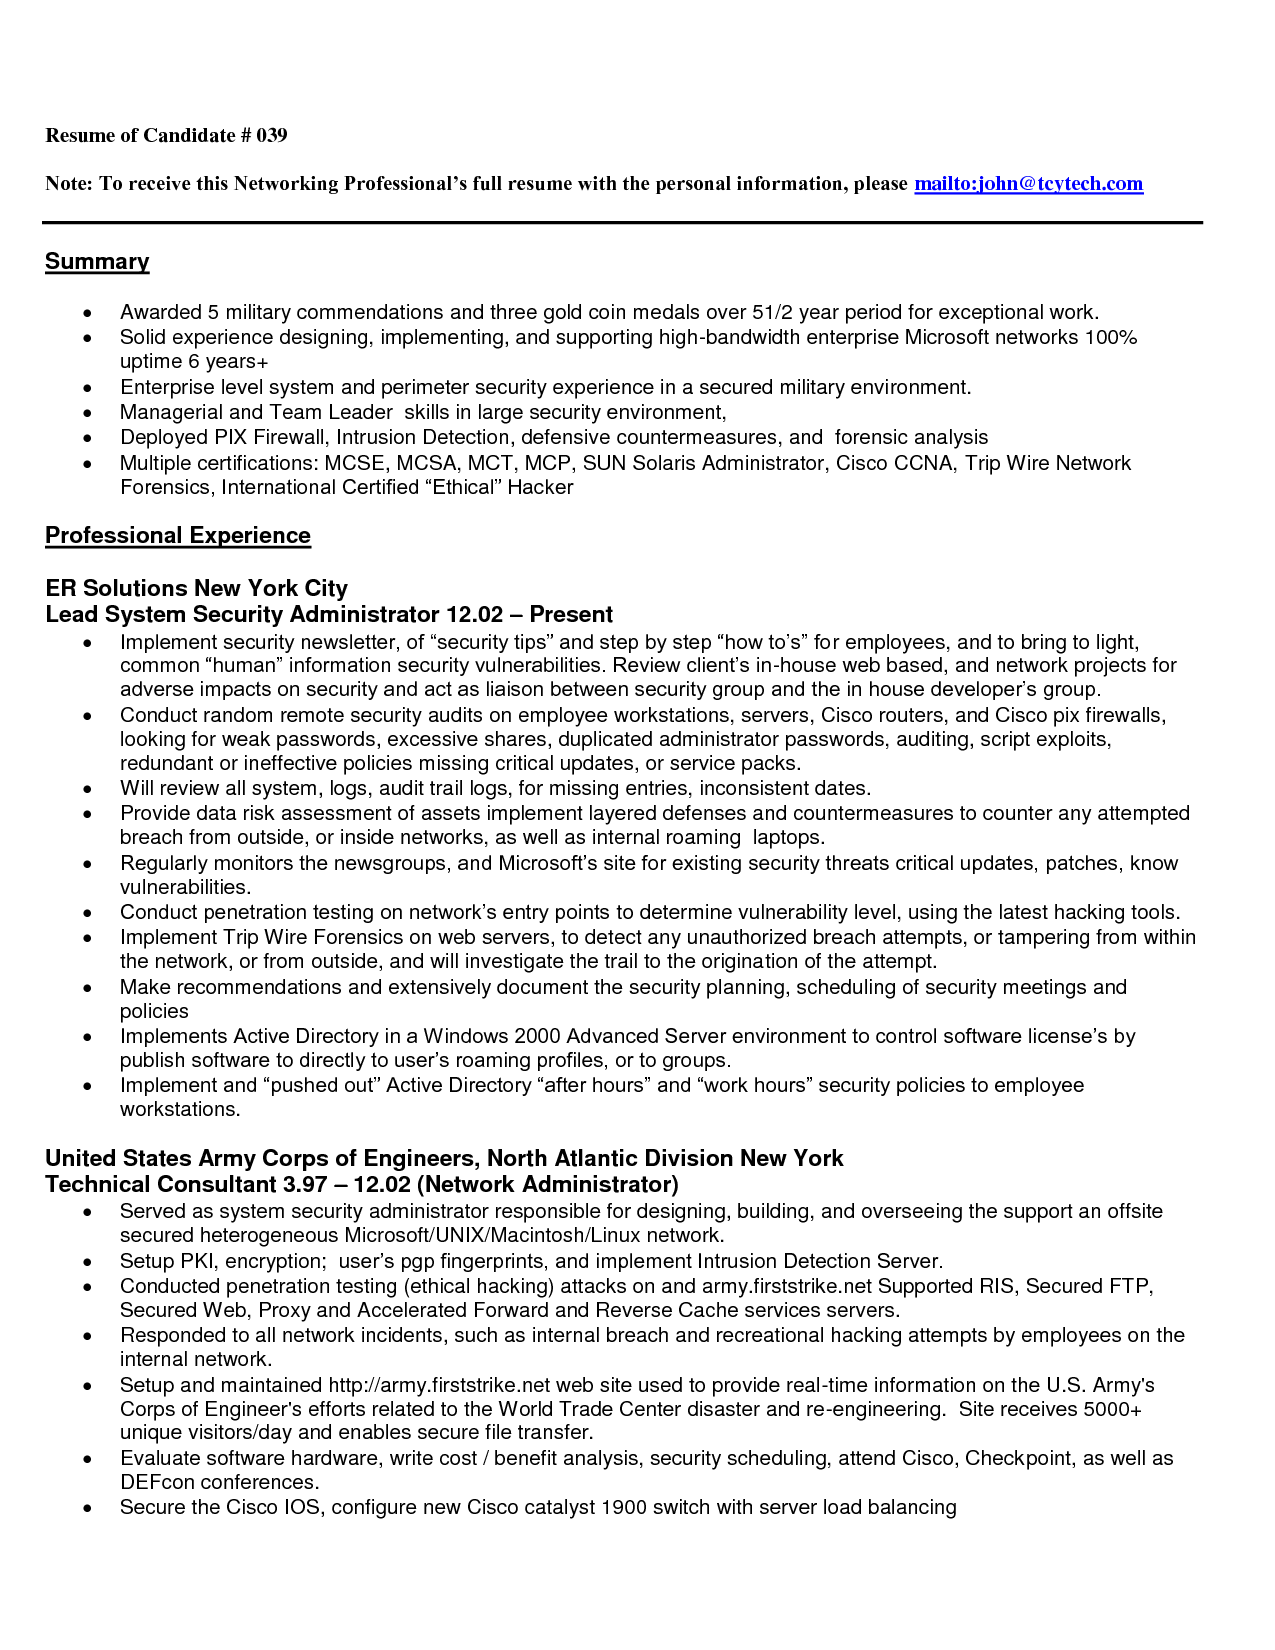 free entry level resumes samplebusinessresume com sample entry level resume templates - How To Write A Entry Level Resume